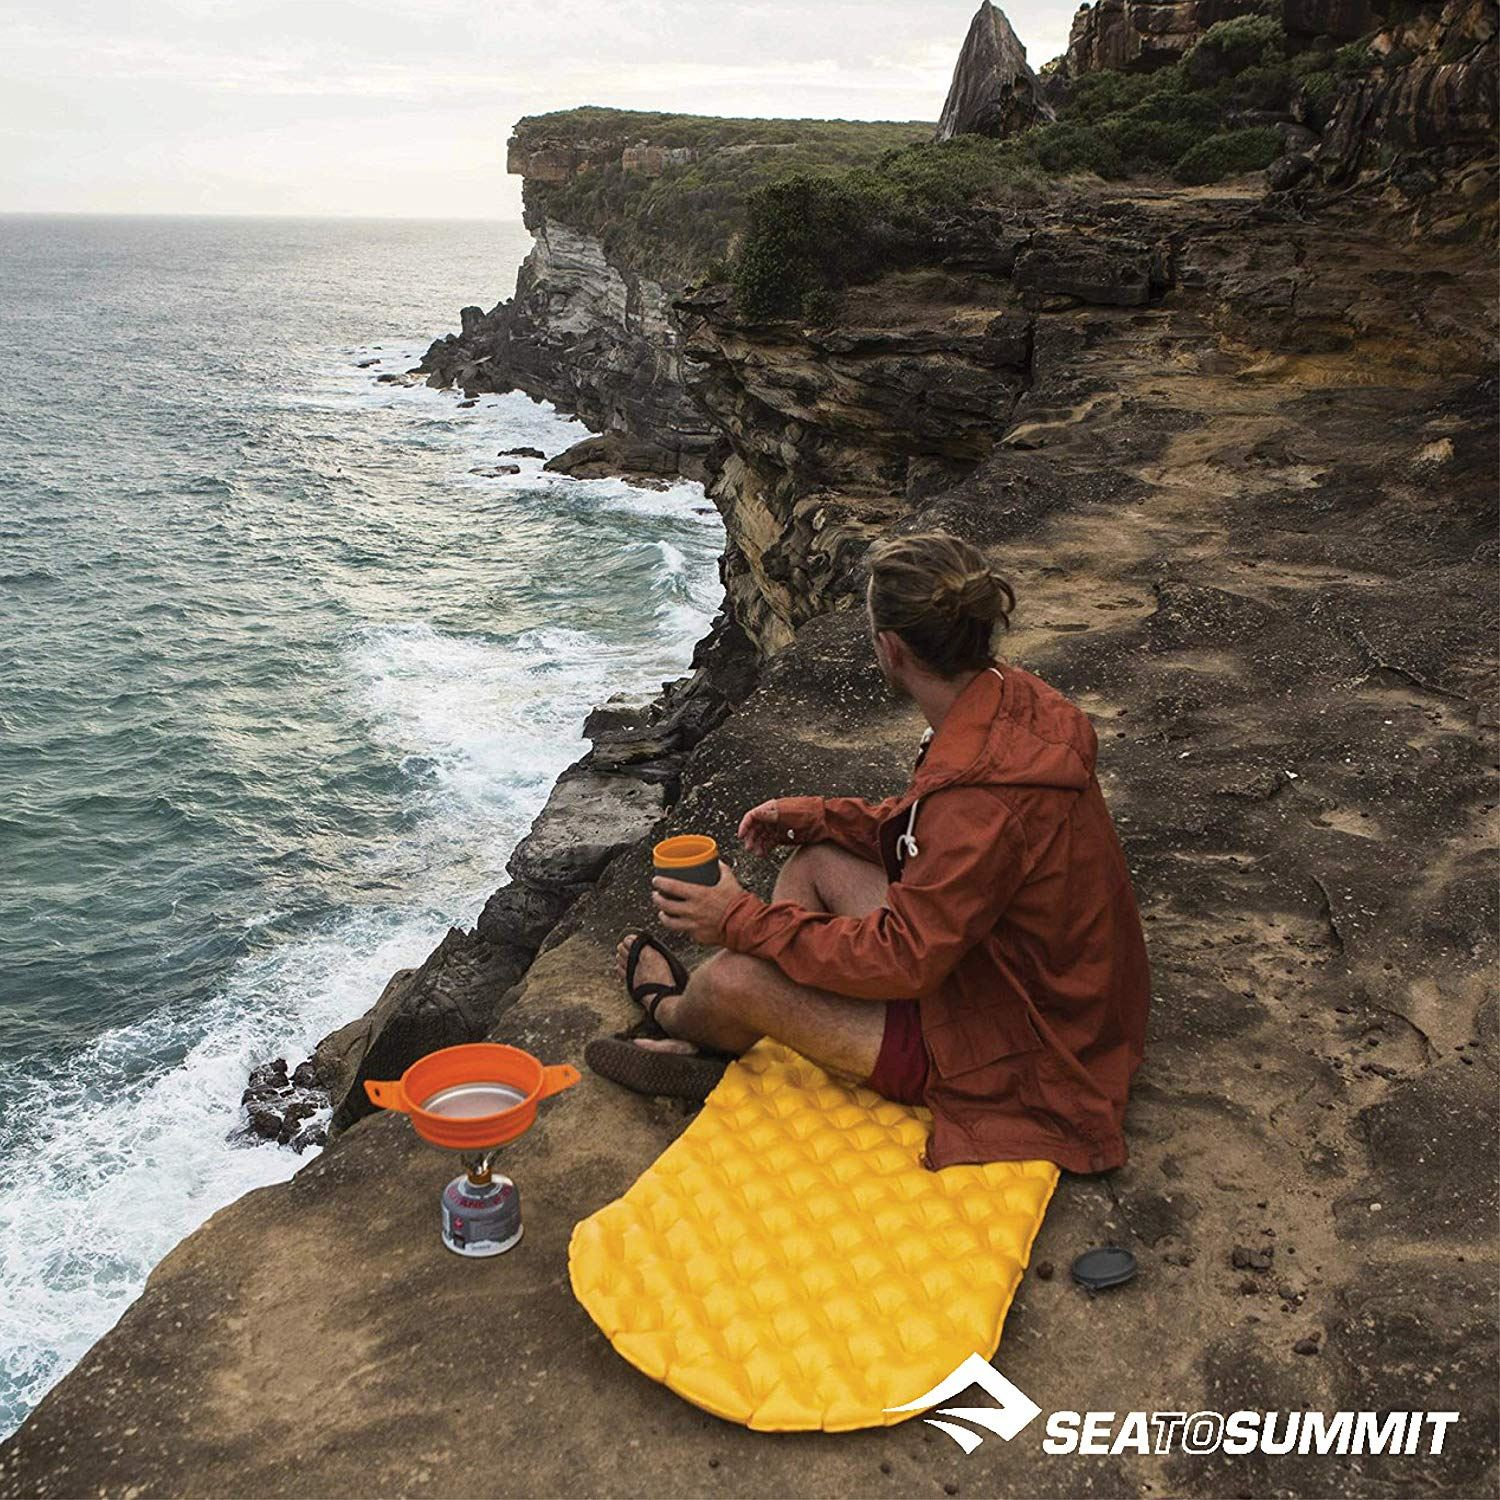 Sea to Summit Self Inflating Sleeping Mat  Camping Bed Insulated Ultralight